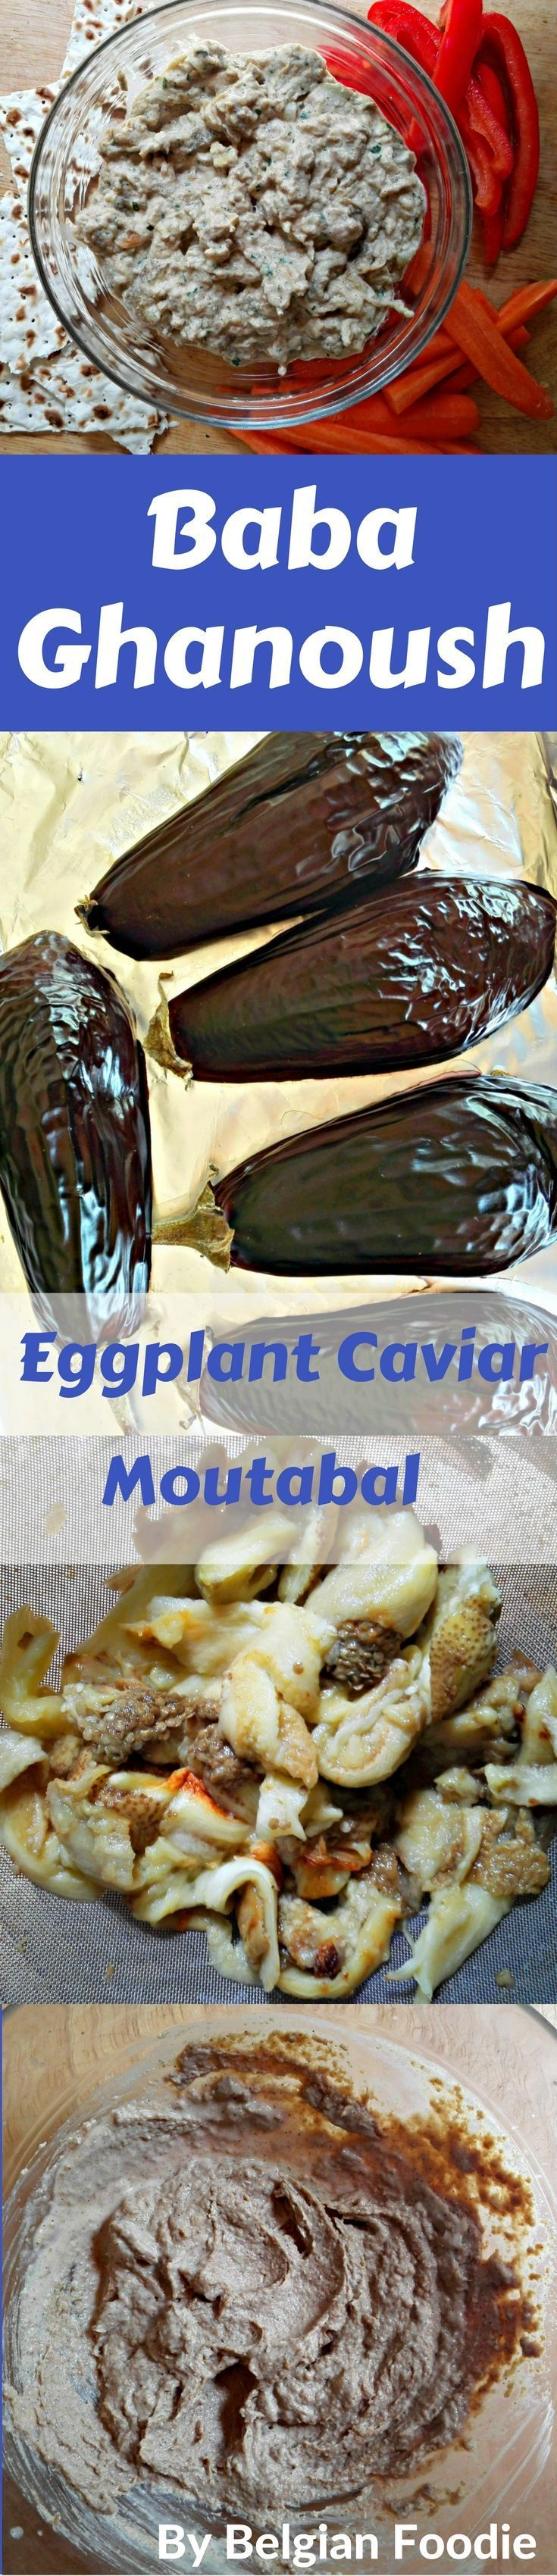 An easy VEGAN appetizer made with Eggplants and Tahini. So tasty!